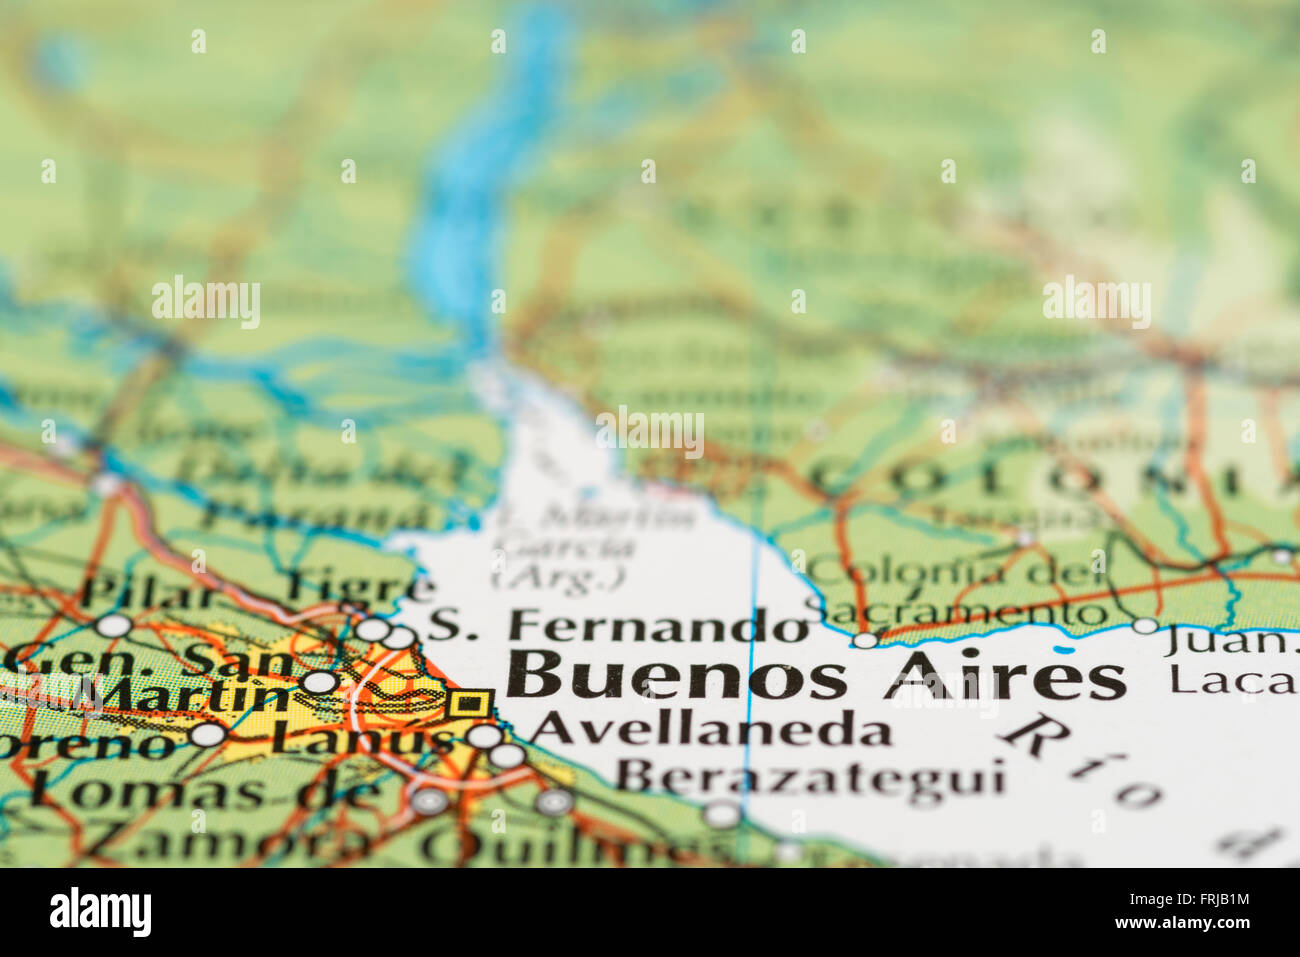 Close up of a map of Buenos Aires in Argentina - Stock Image